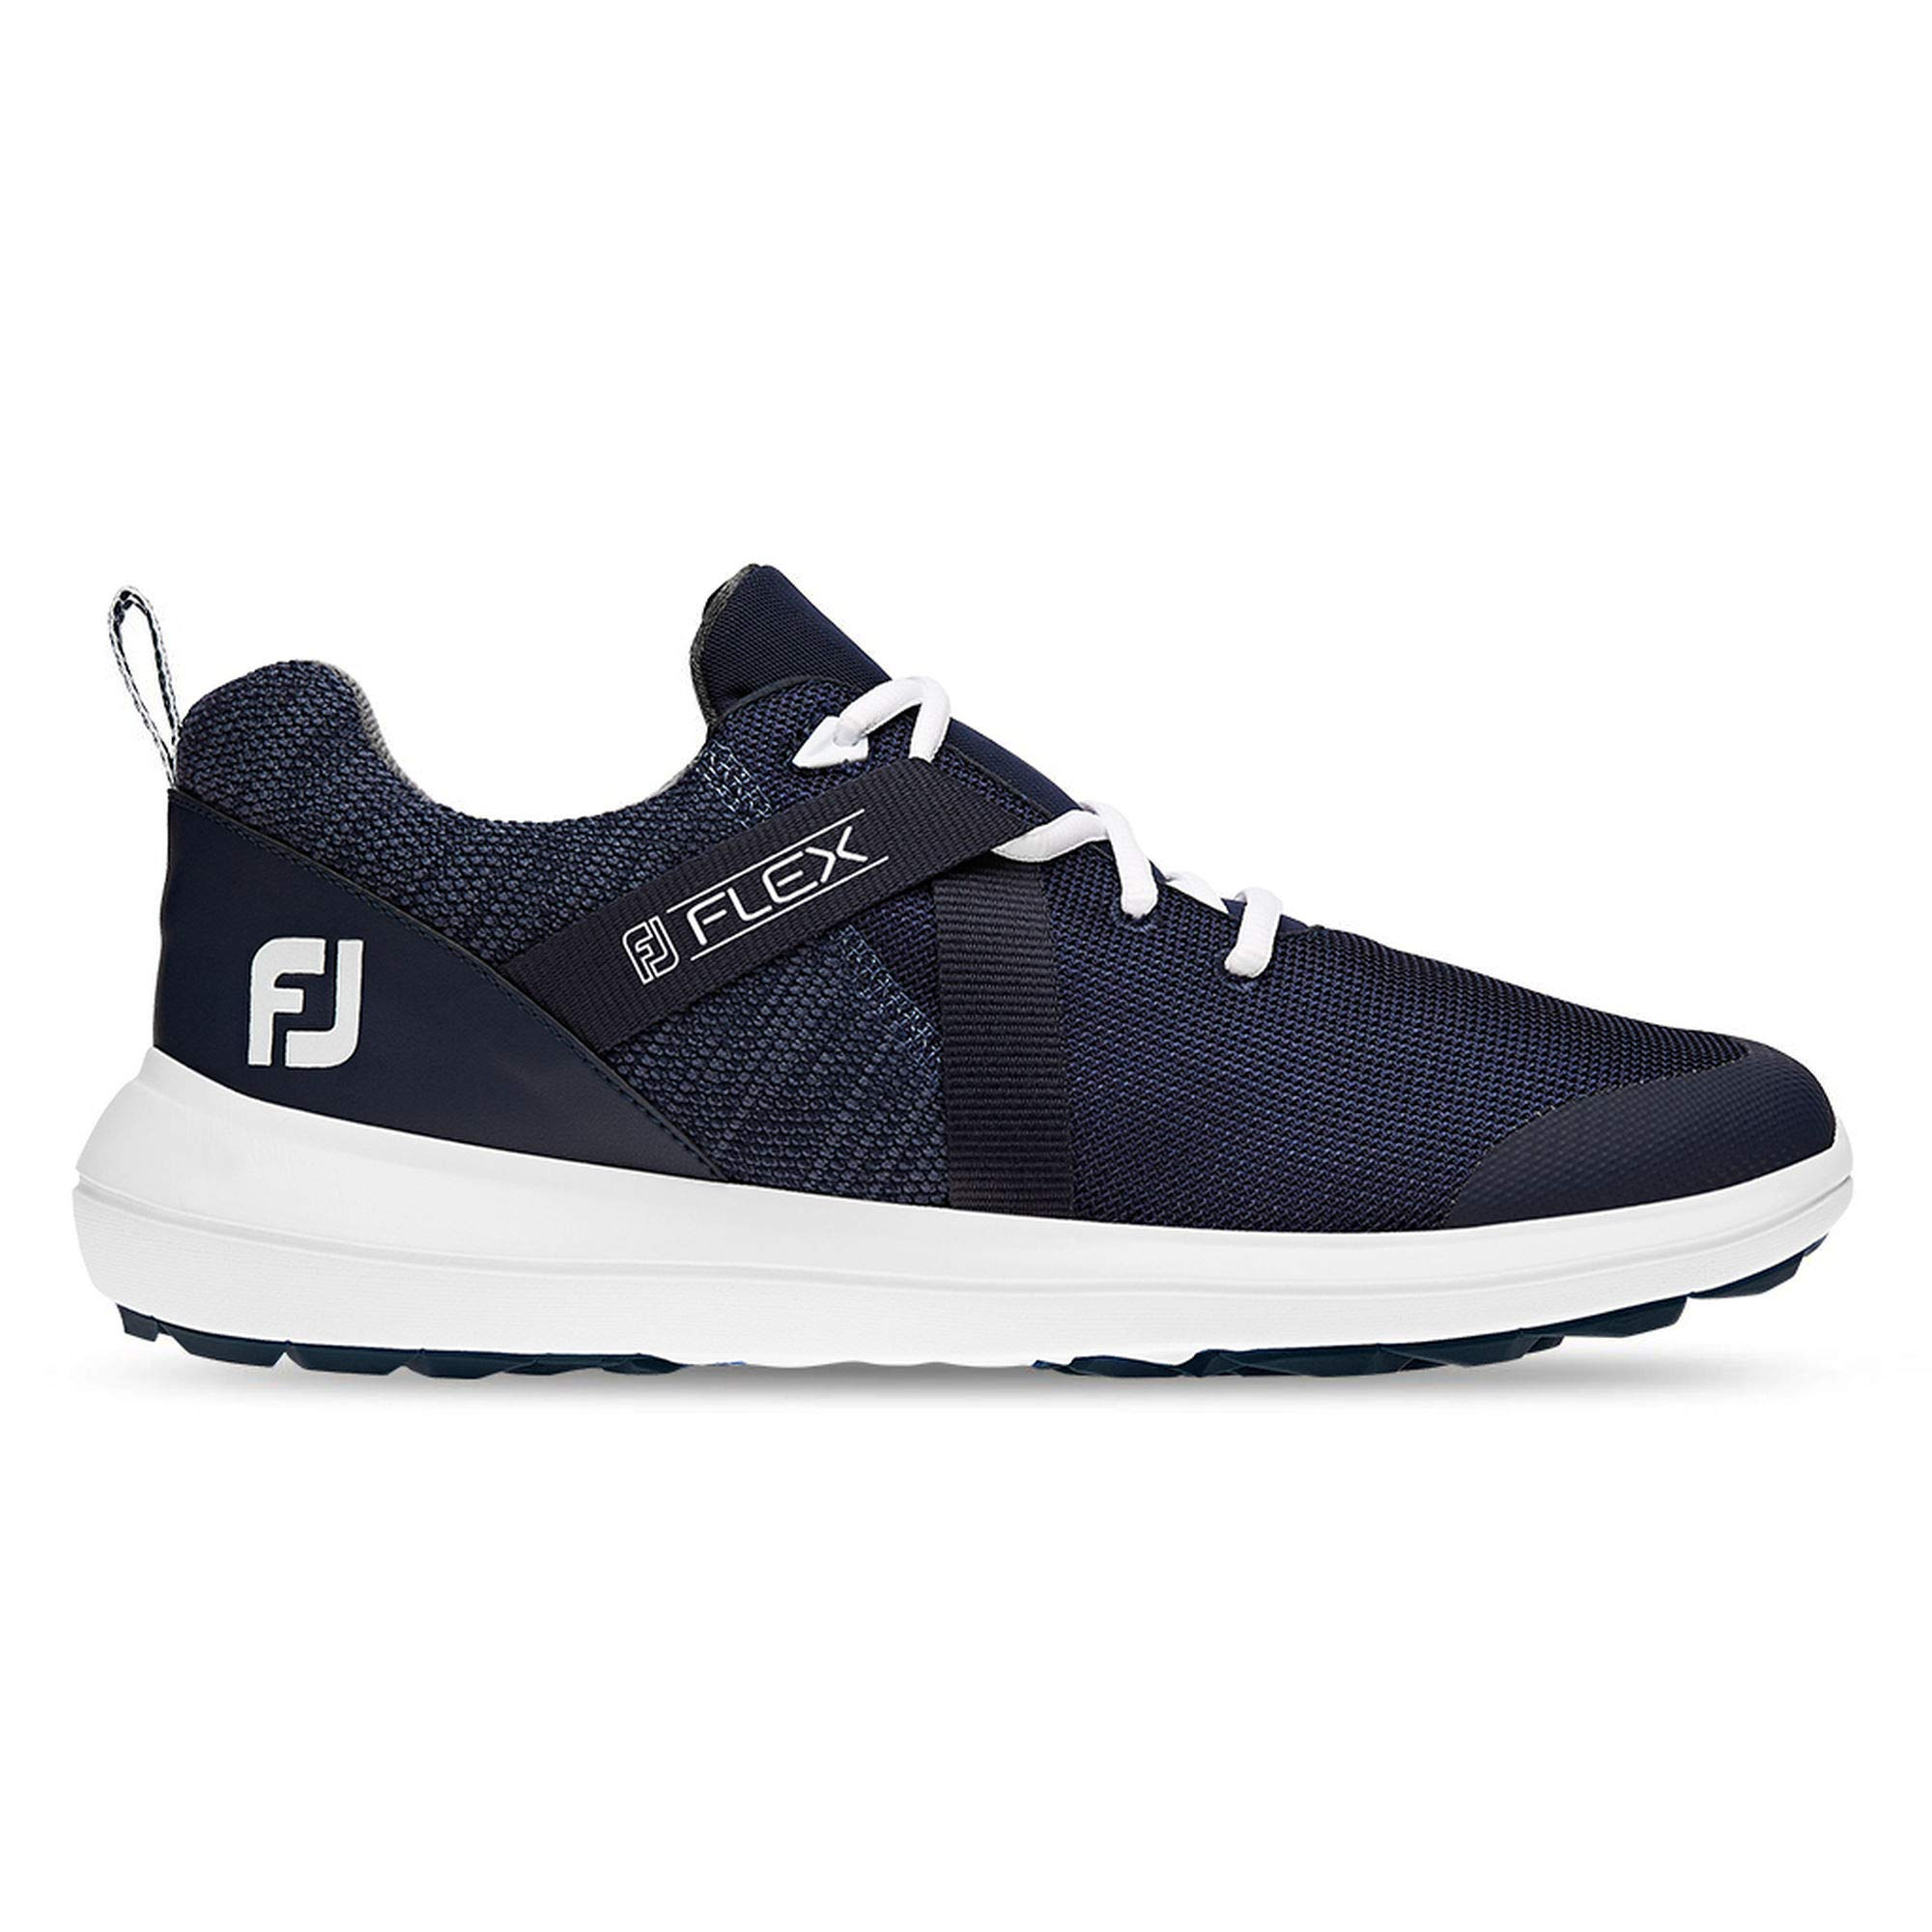 FootJoy Men's Flex Golf Shoes Blue 10 M, Navy, US by FootJoy